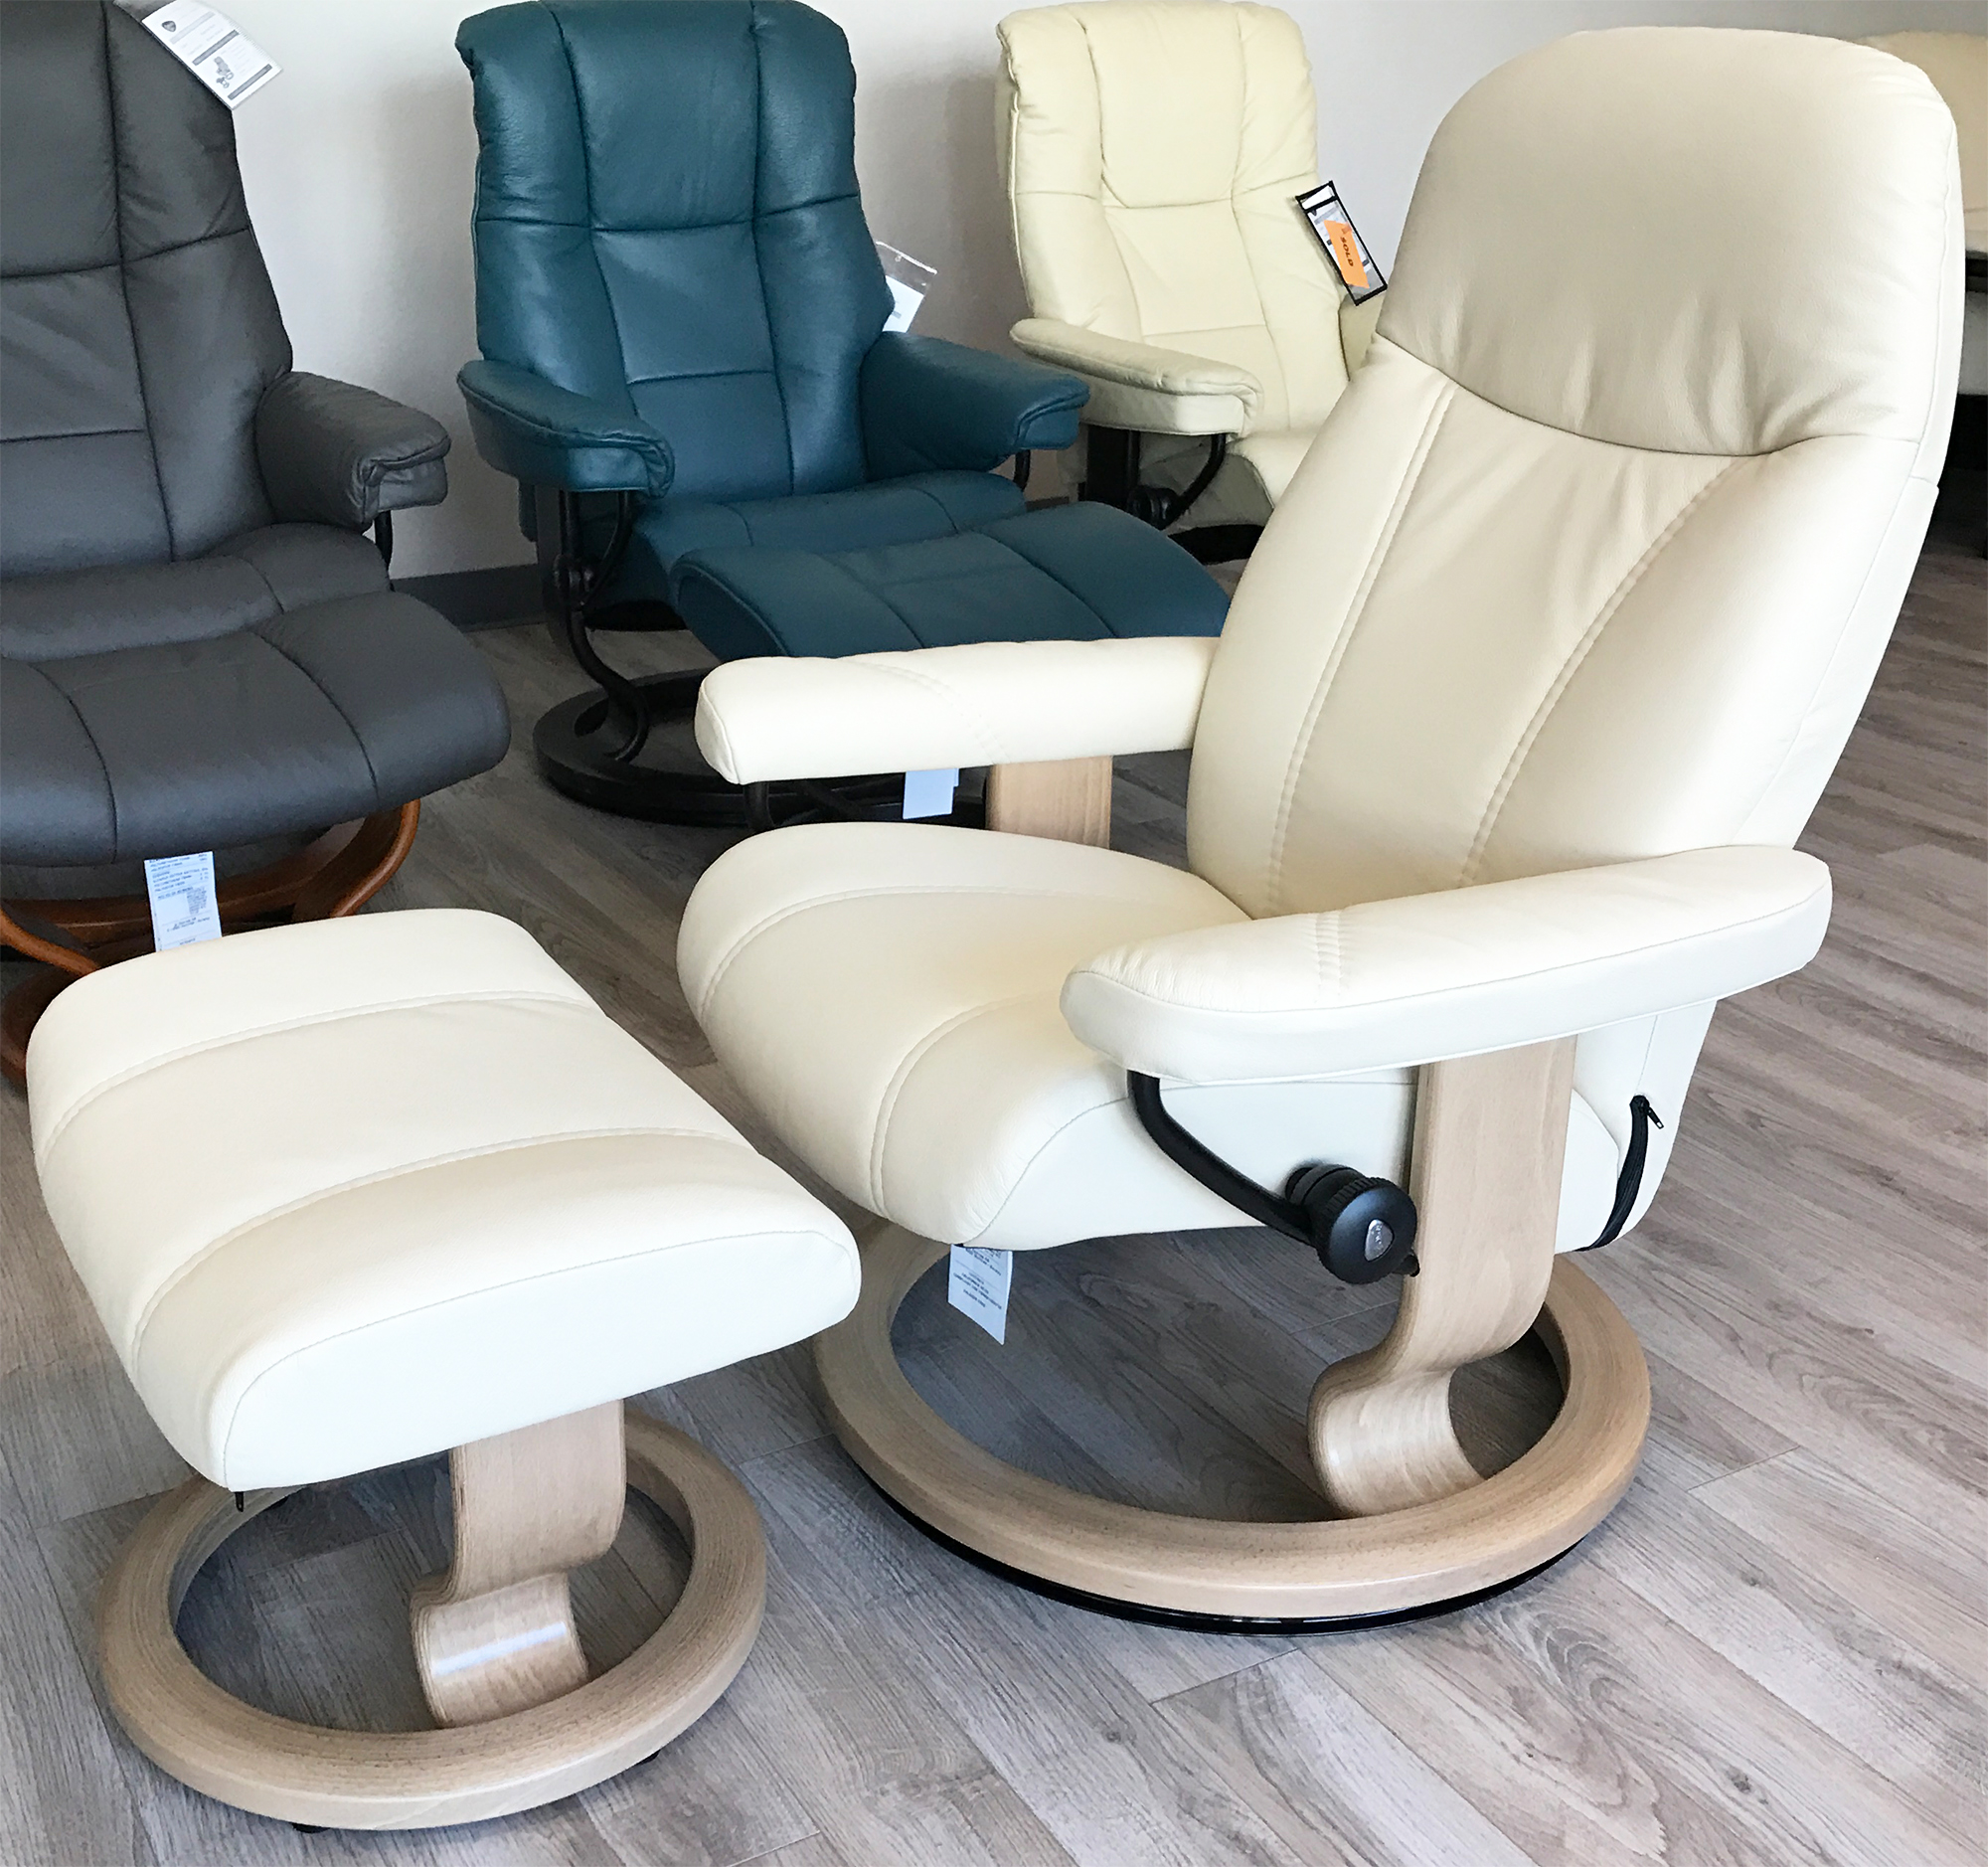 Stressless Consul Recliner Chair And Ottoman Batick Cream Leather By Ekornes